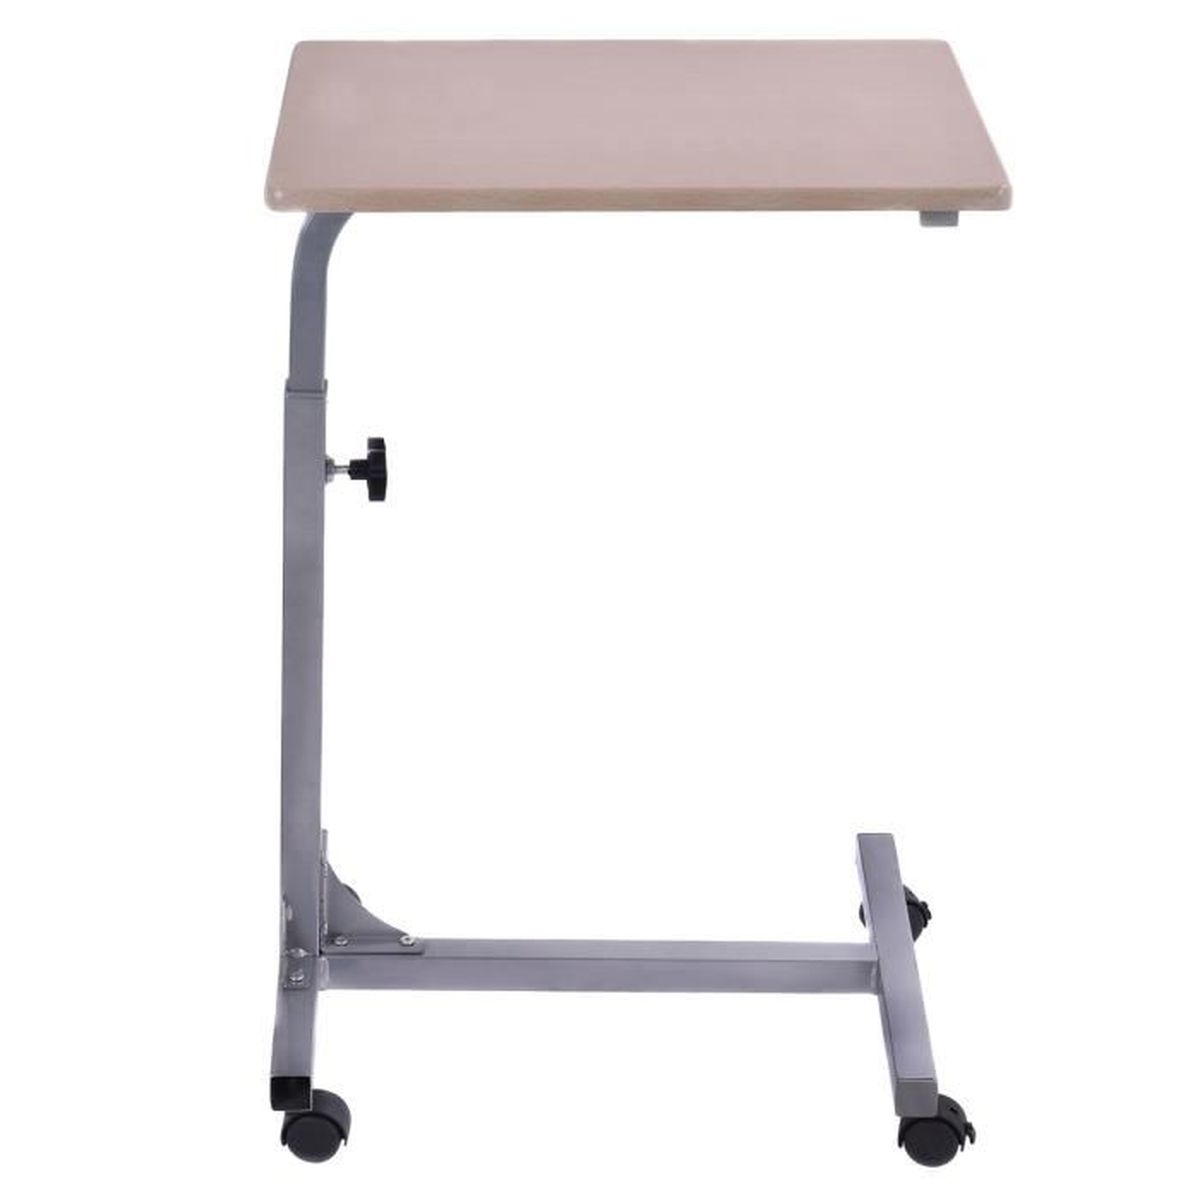 table d 39 ordinateur portable roulant table de lit table d